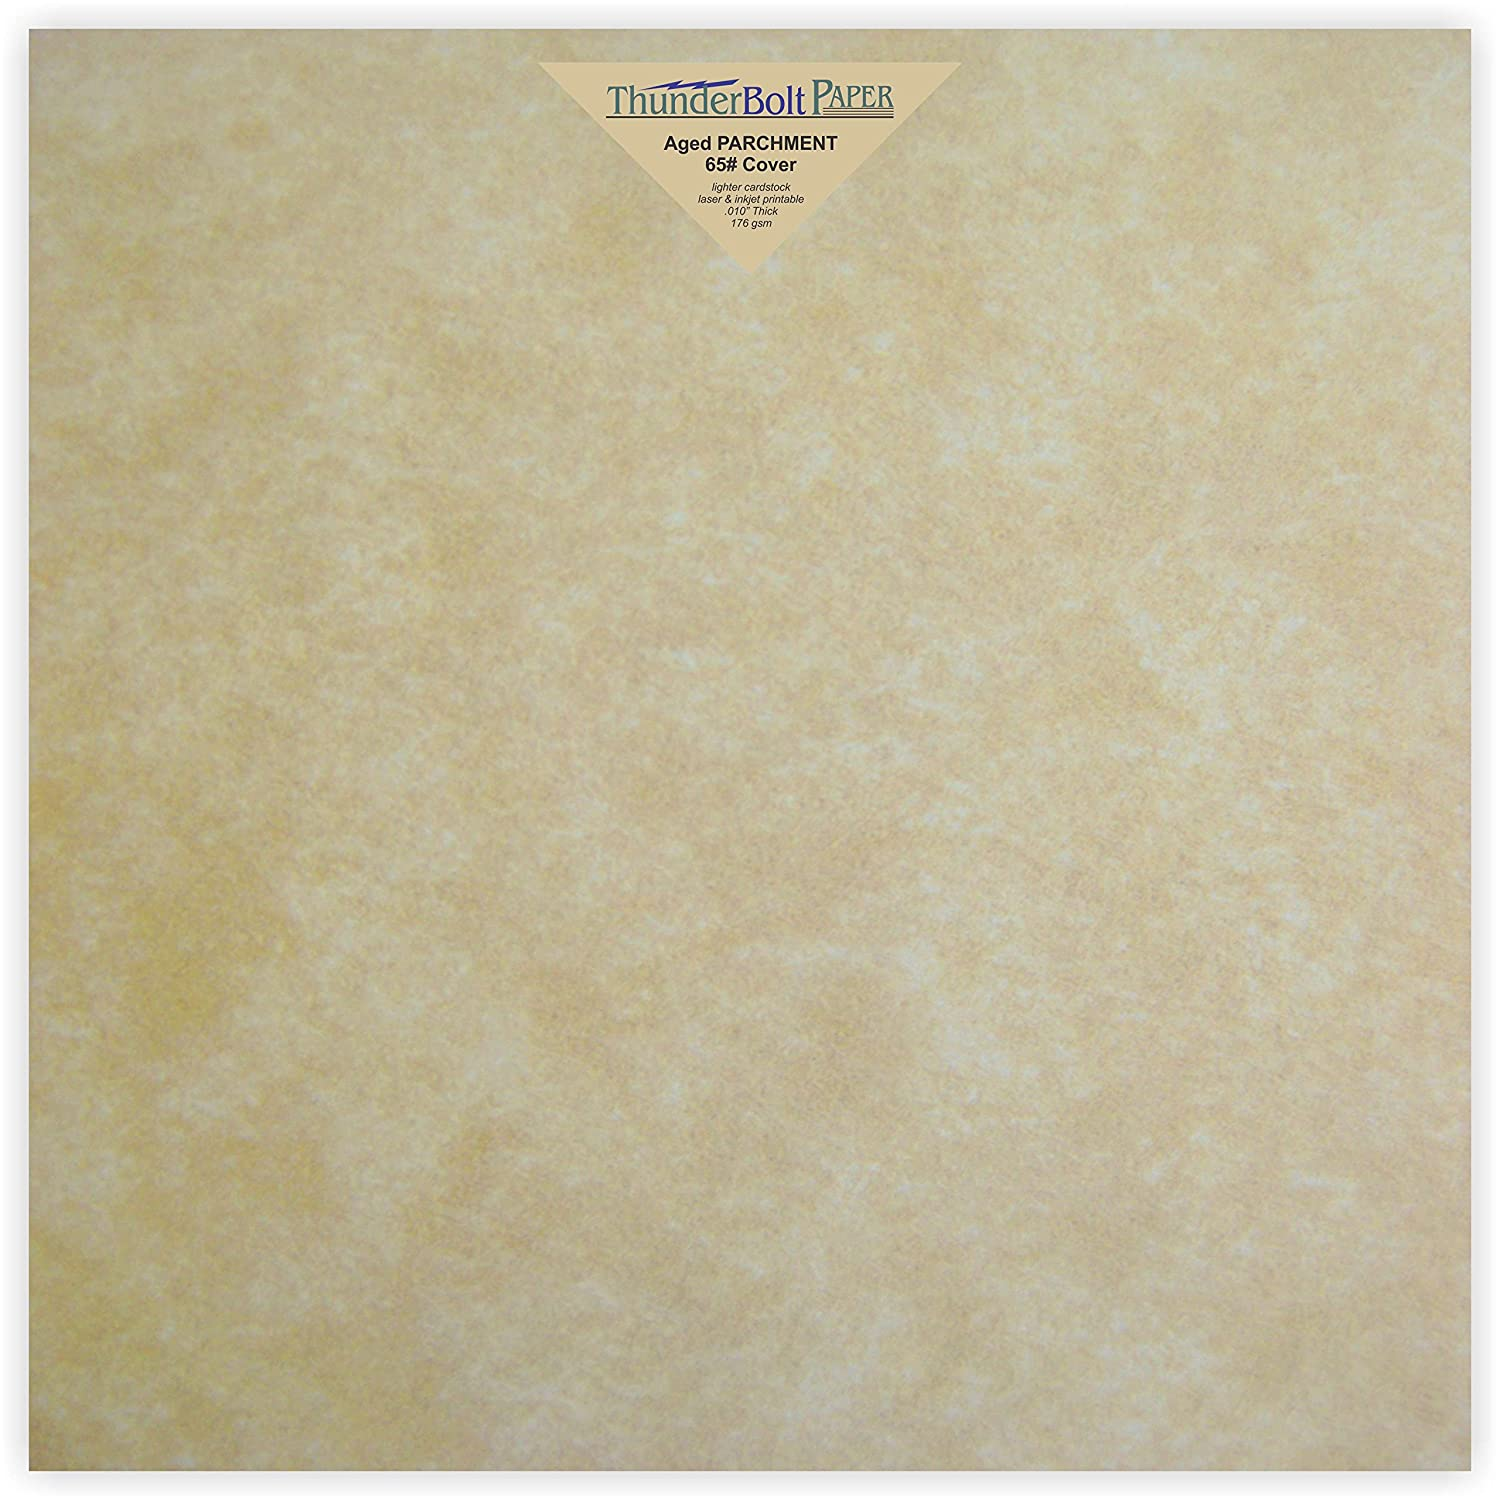 50 Old Age Parchment 65lb Cover Paper Sheets 12 X 12 Inches Cardstock Weight Colored Sheets (12